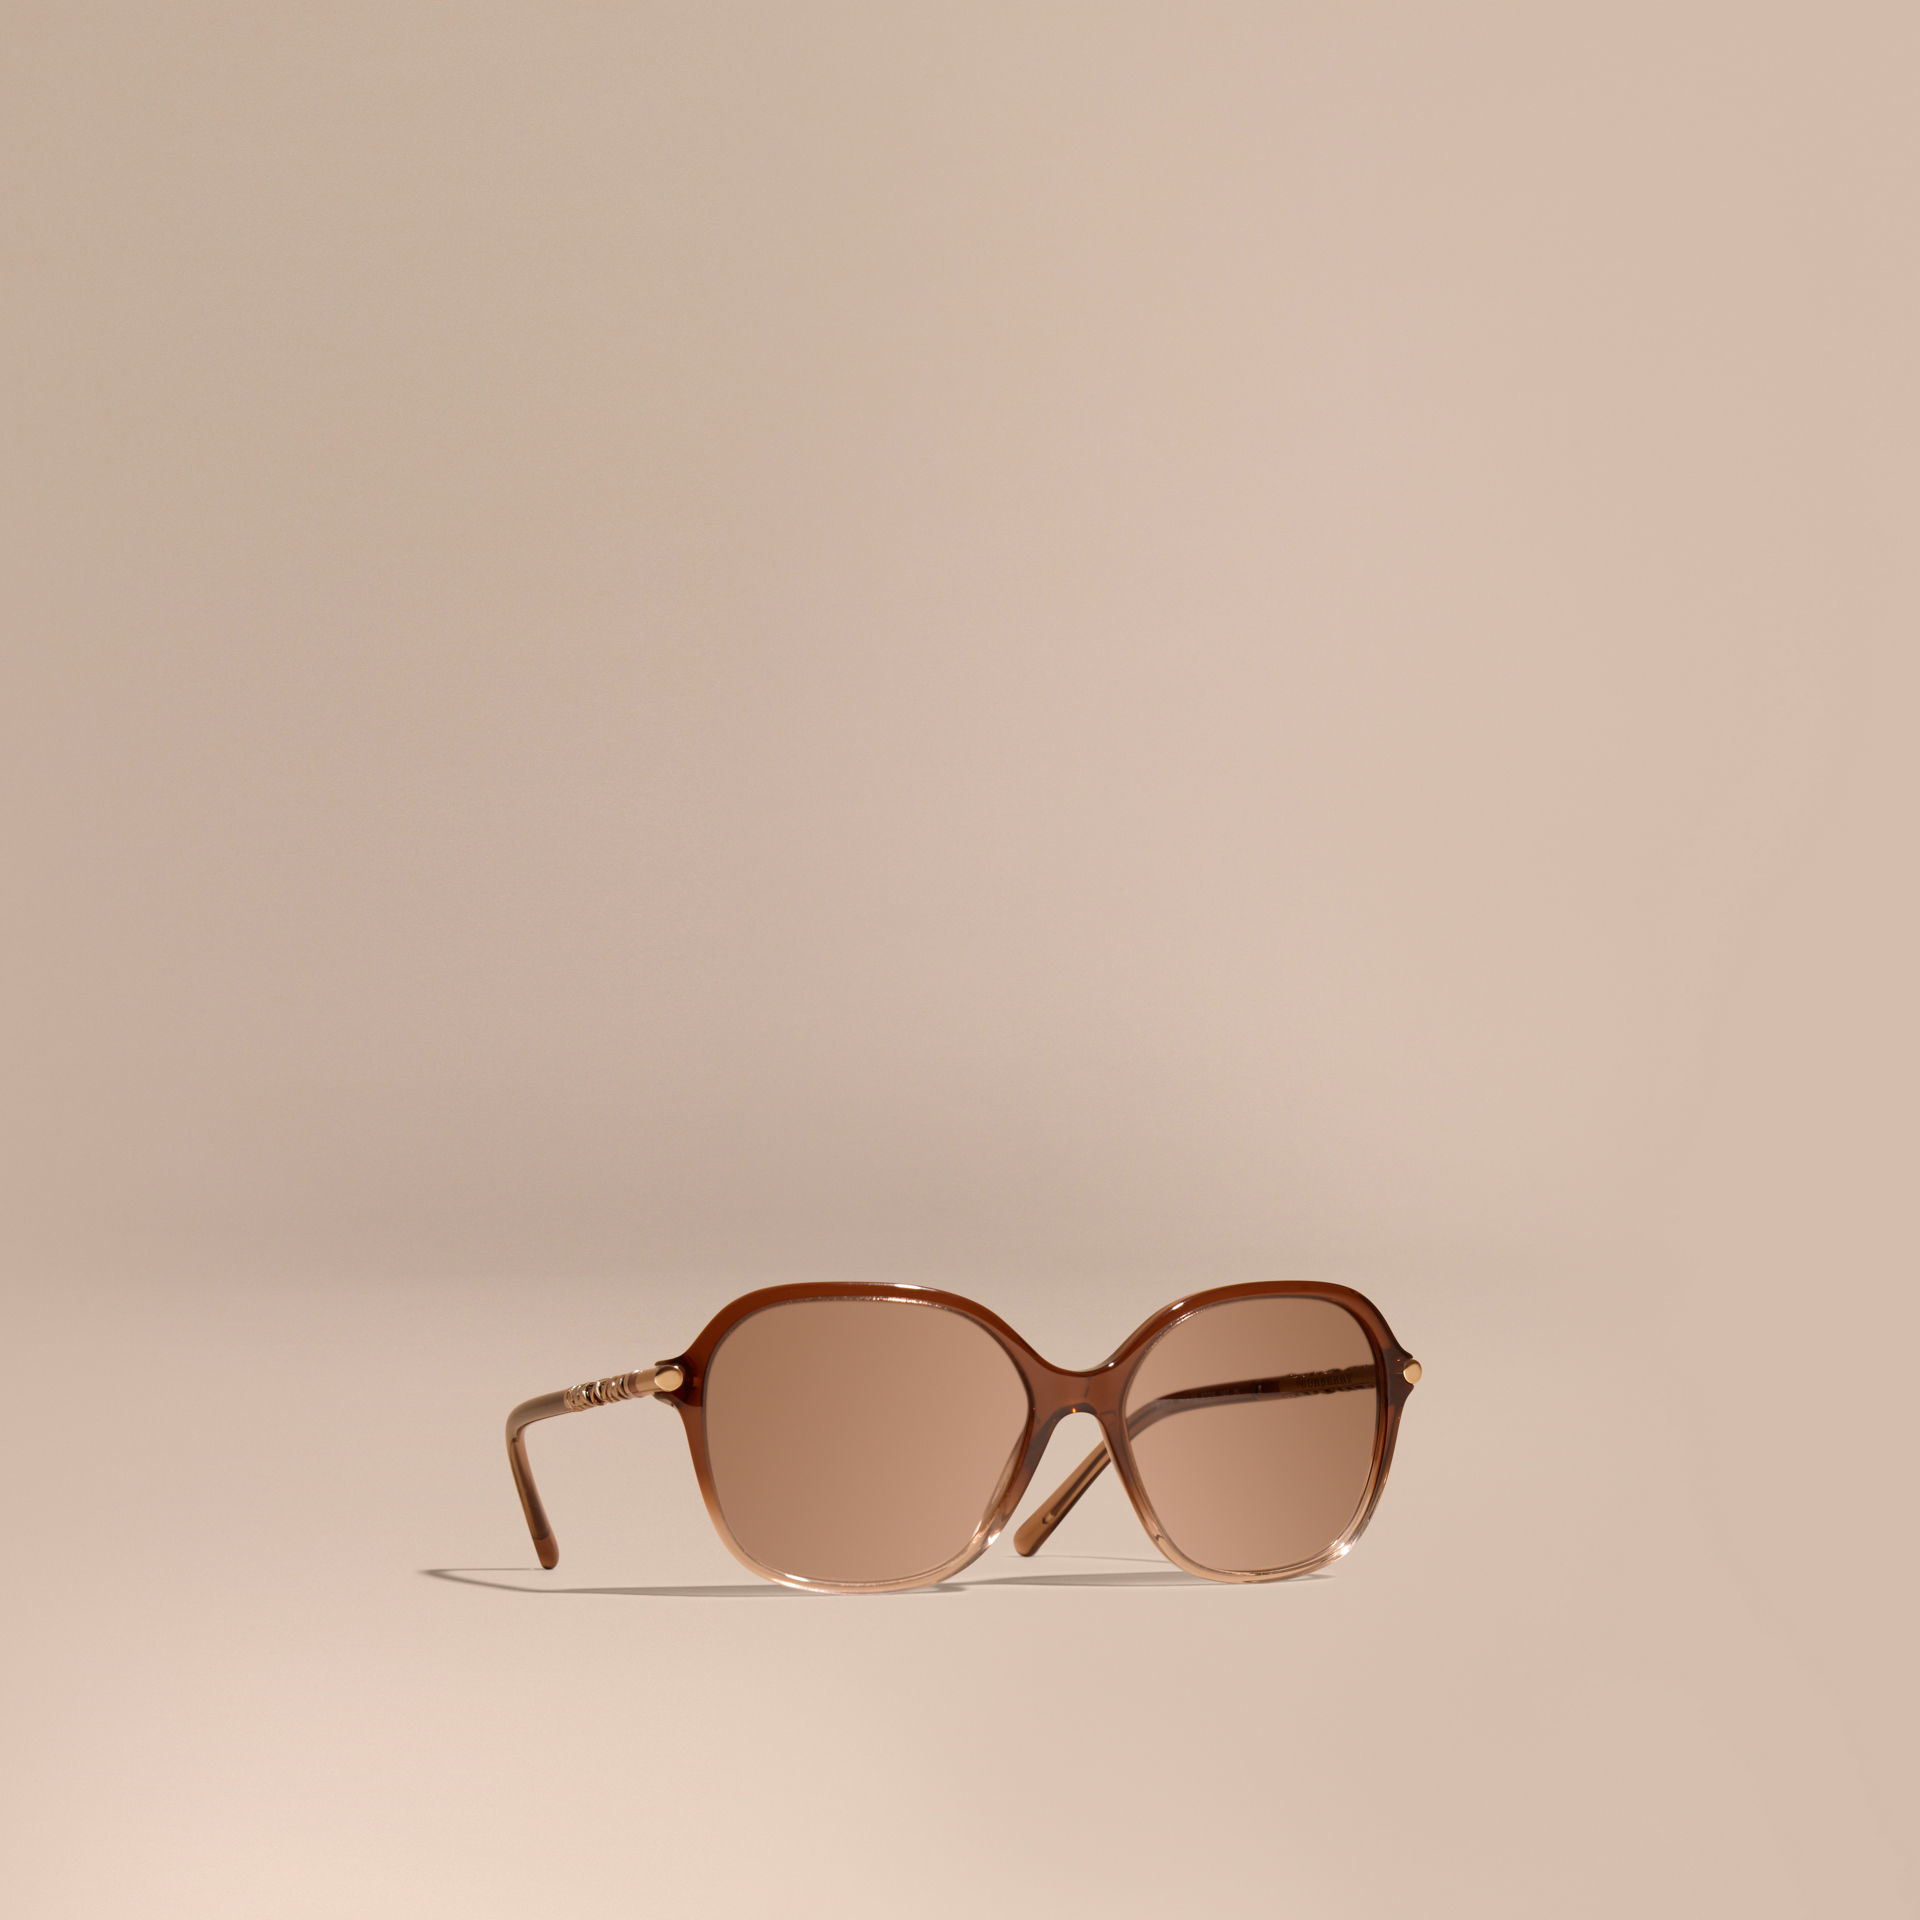 fbd61d6d9c2 Lyst - Burberry Check Detail Round Frame Sunglasses Brown in Brown